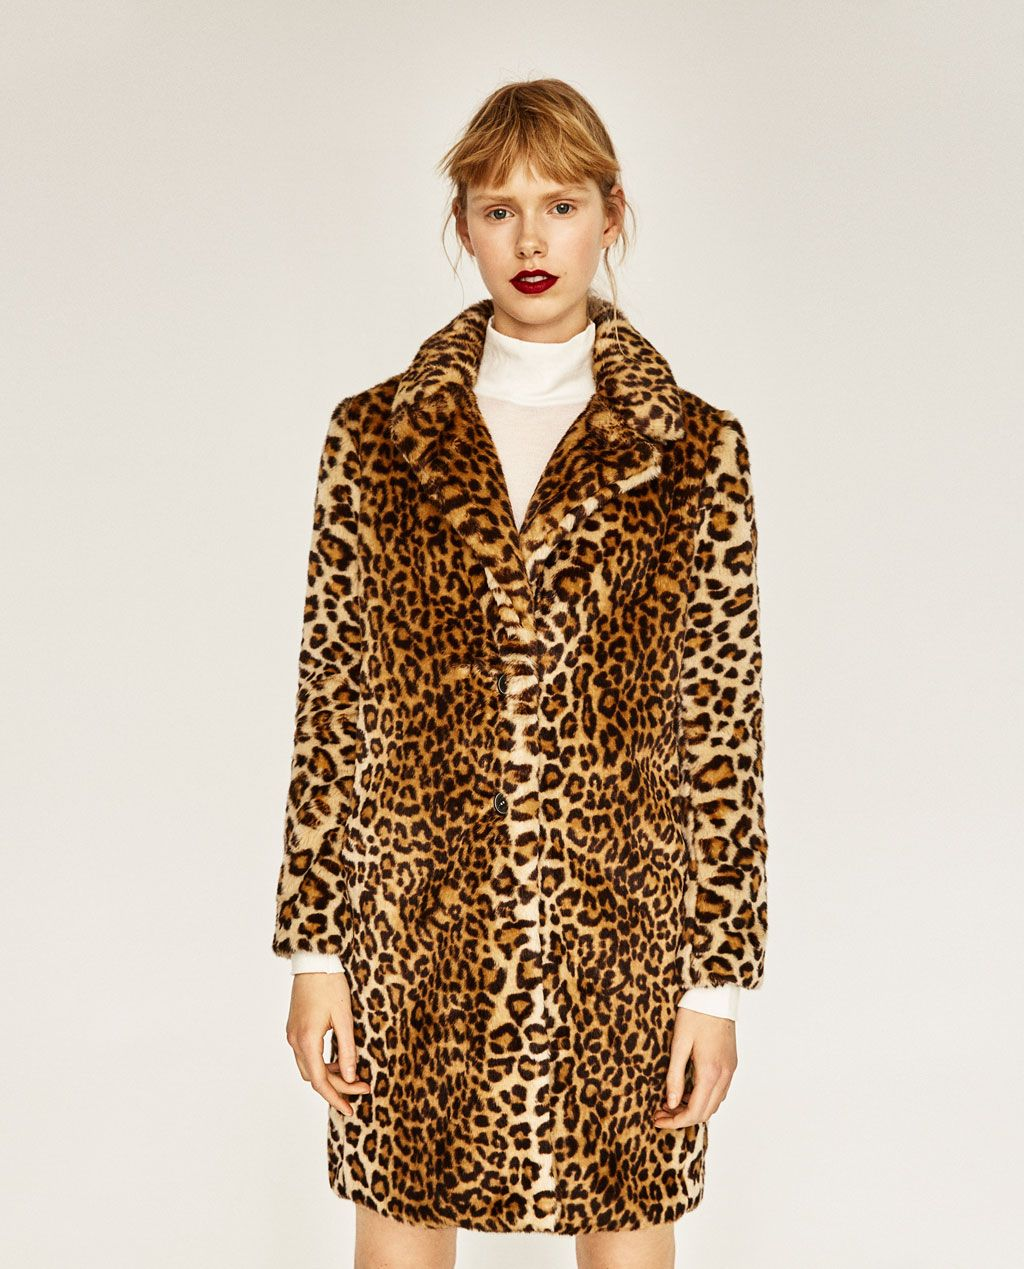 dcddf689f9 Image 2 of FAUX FUR LEOPARD COAT from Zara | Clothing Items ...